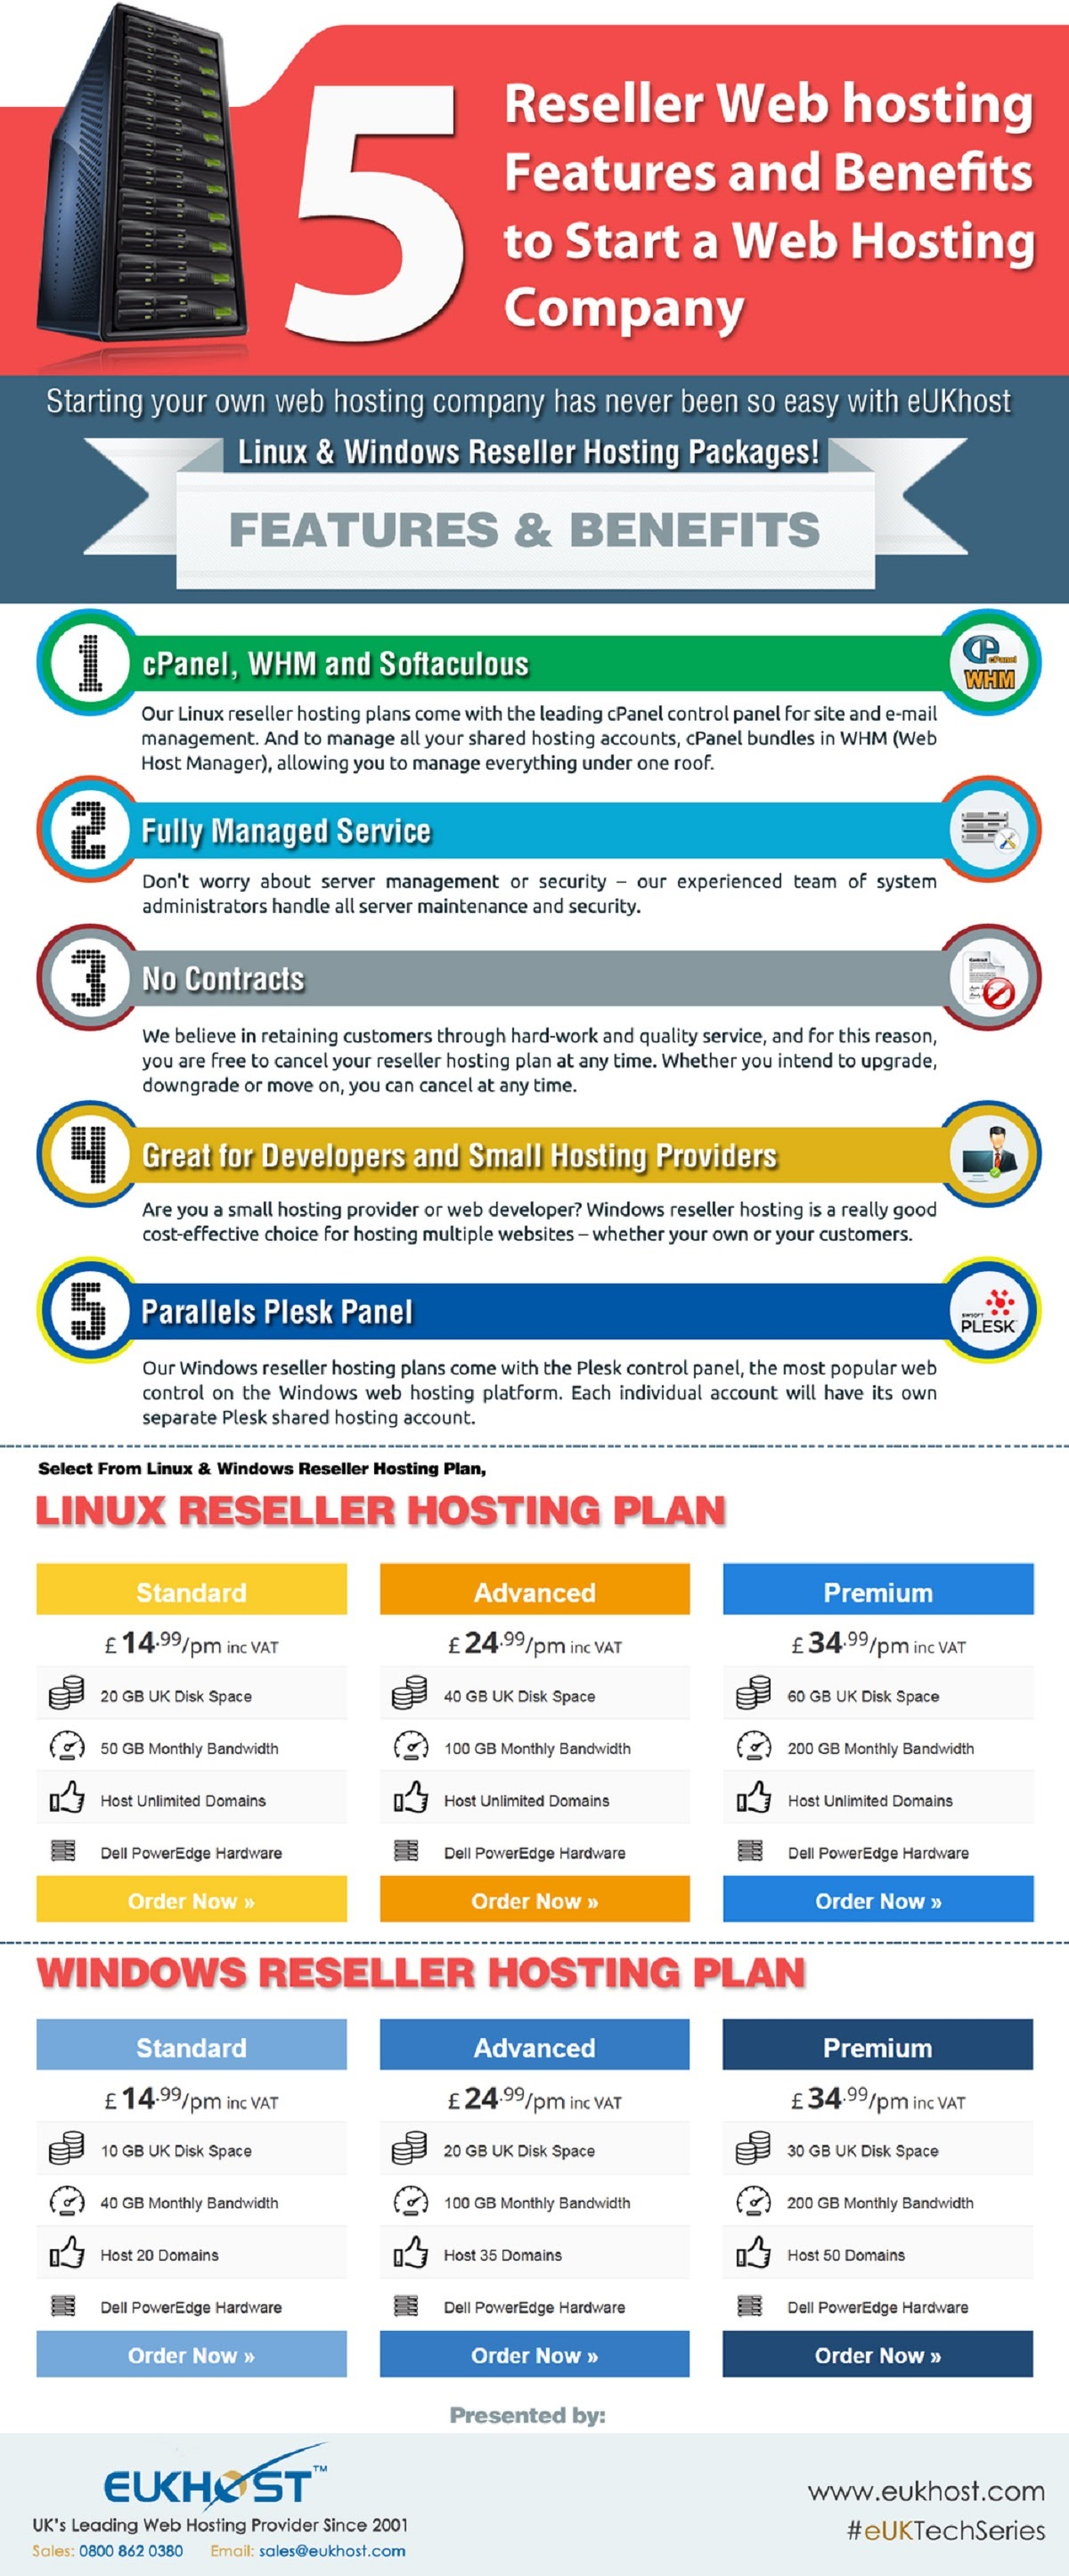 5-reseller-web-hosting-features-and-benefits-to-start-a-web-hosting-company-infographic